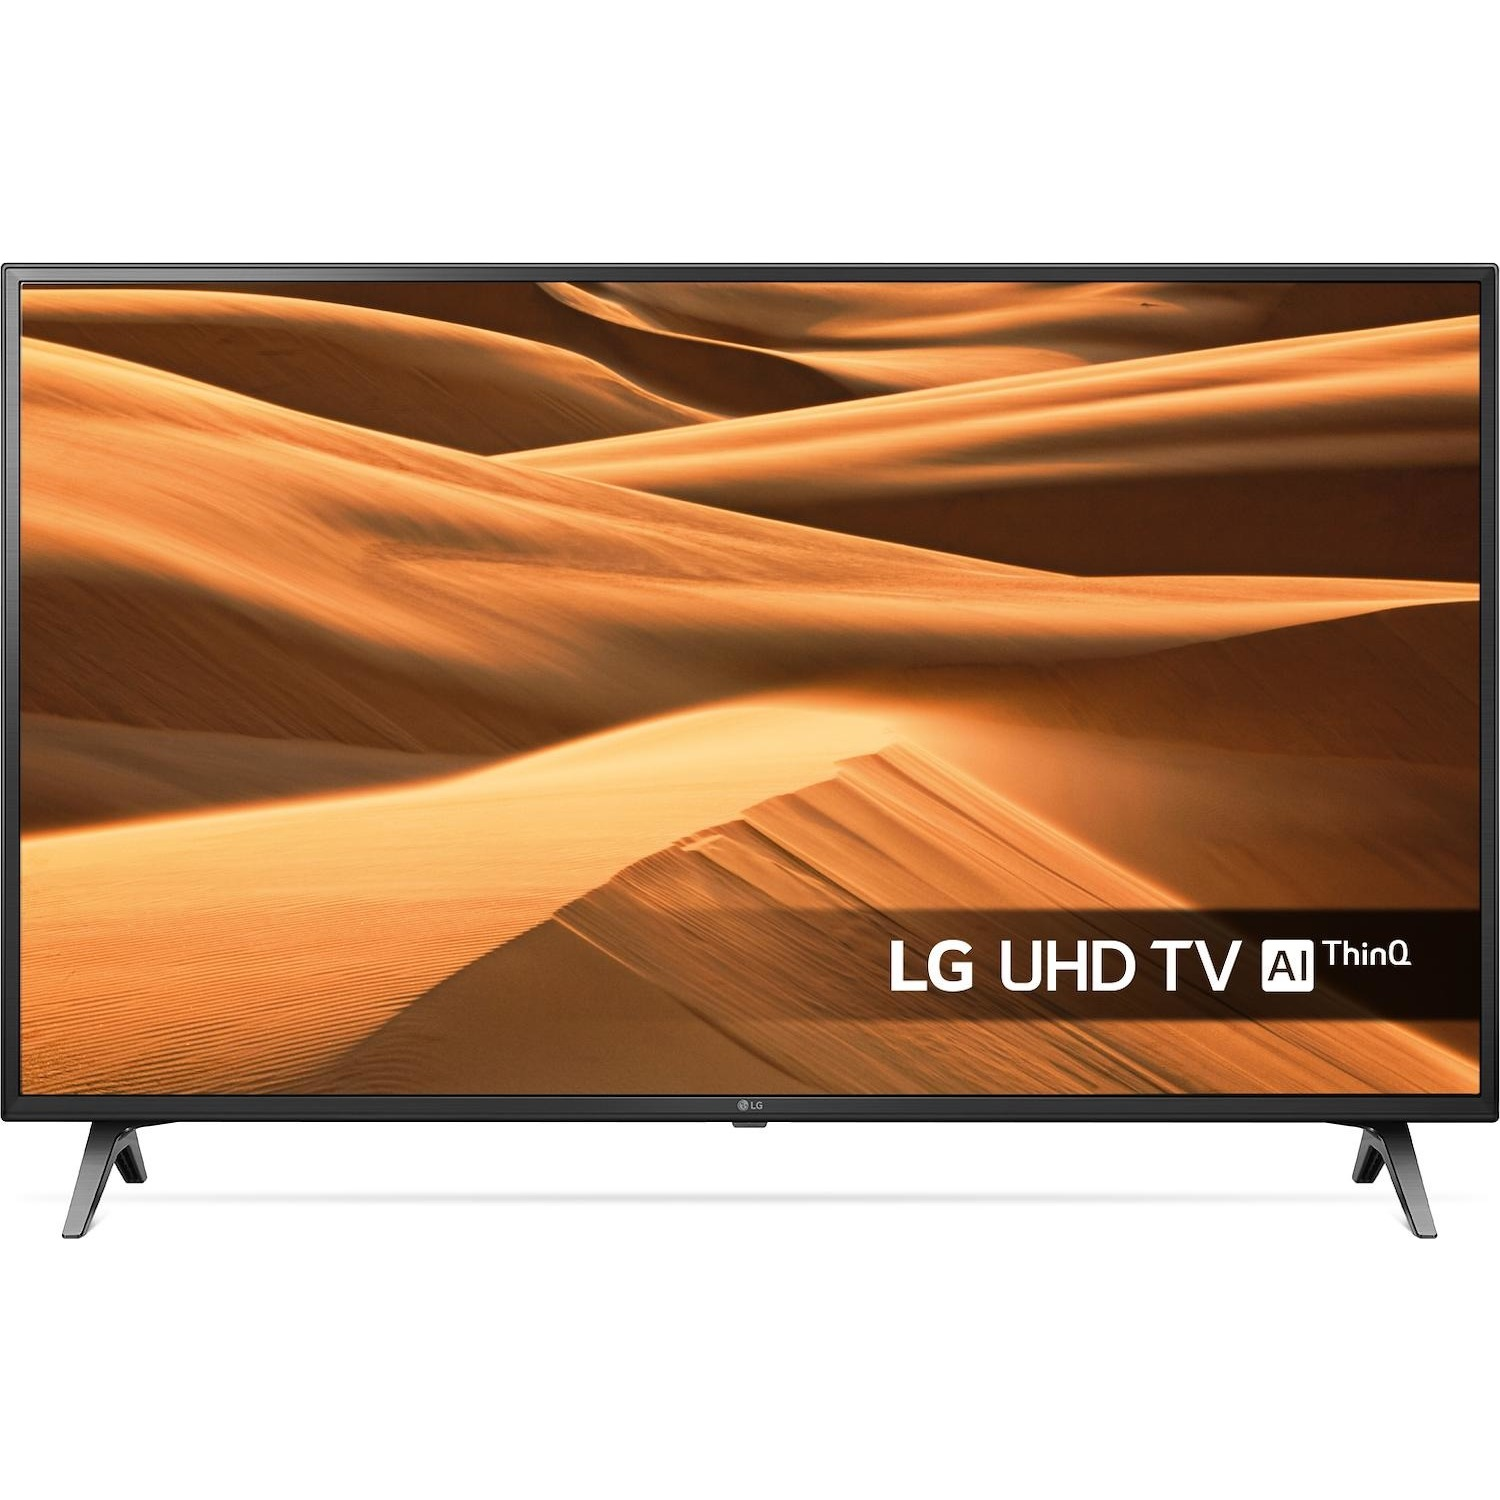 Immagine per TV LED Smart 4K UHD LG 49UM7100P da DIMOStore